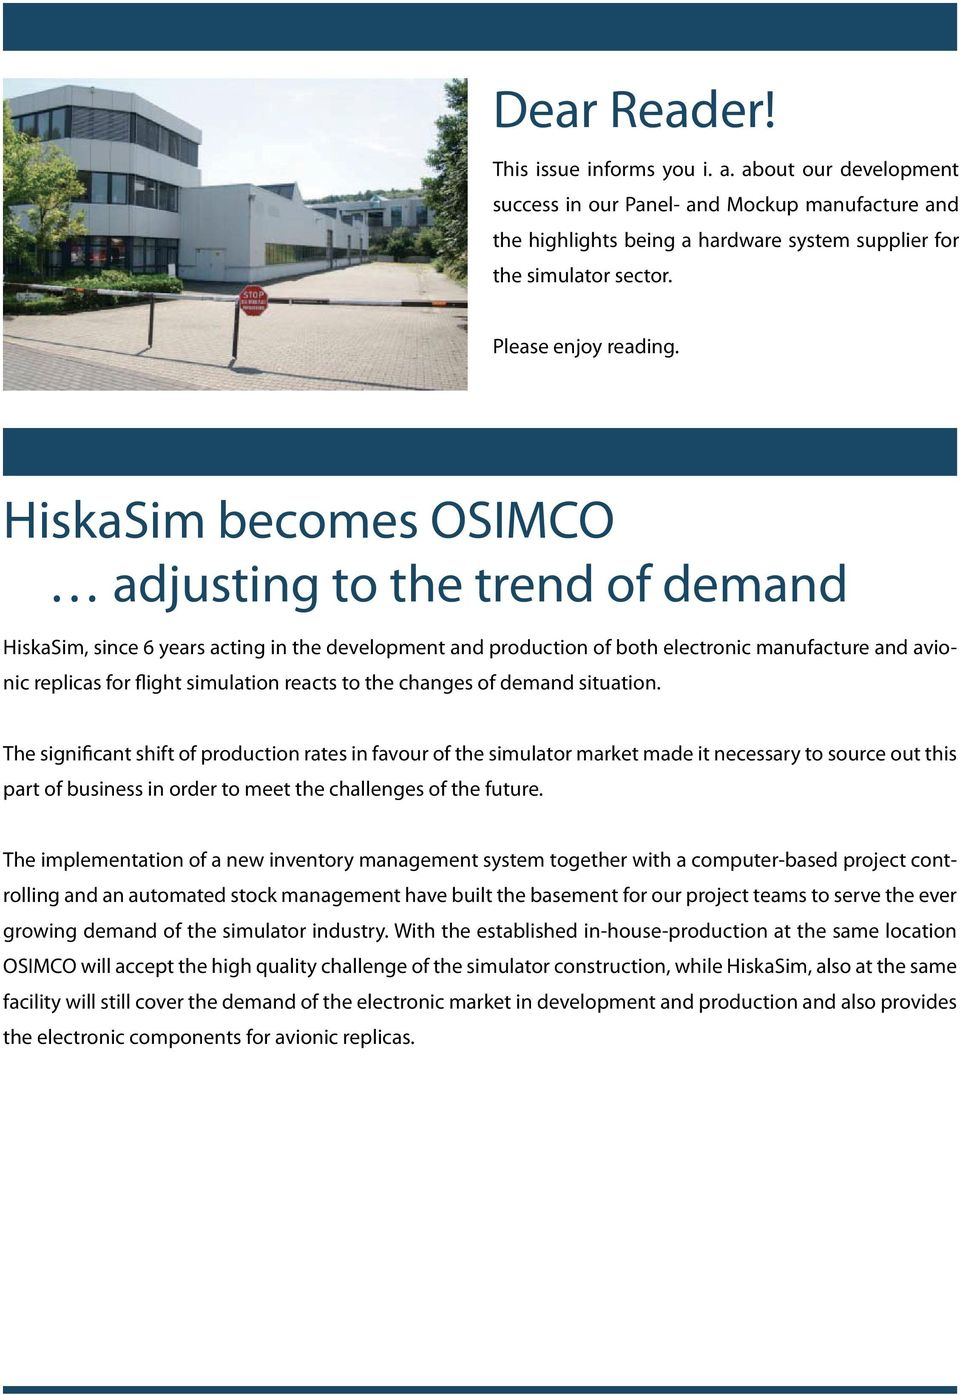 HiskaSim becomes OSIMCO adjusting to the trend of demand HiskaSim, since 6 years acting in the development and production of both electronic manufacture and avionic replicas for flight simulation